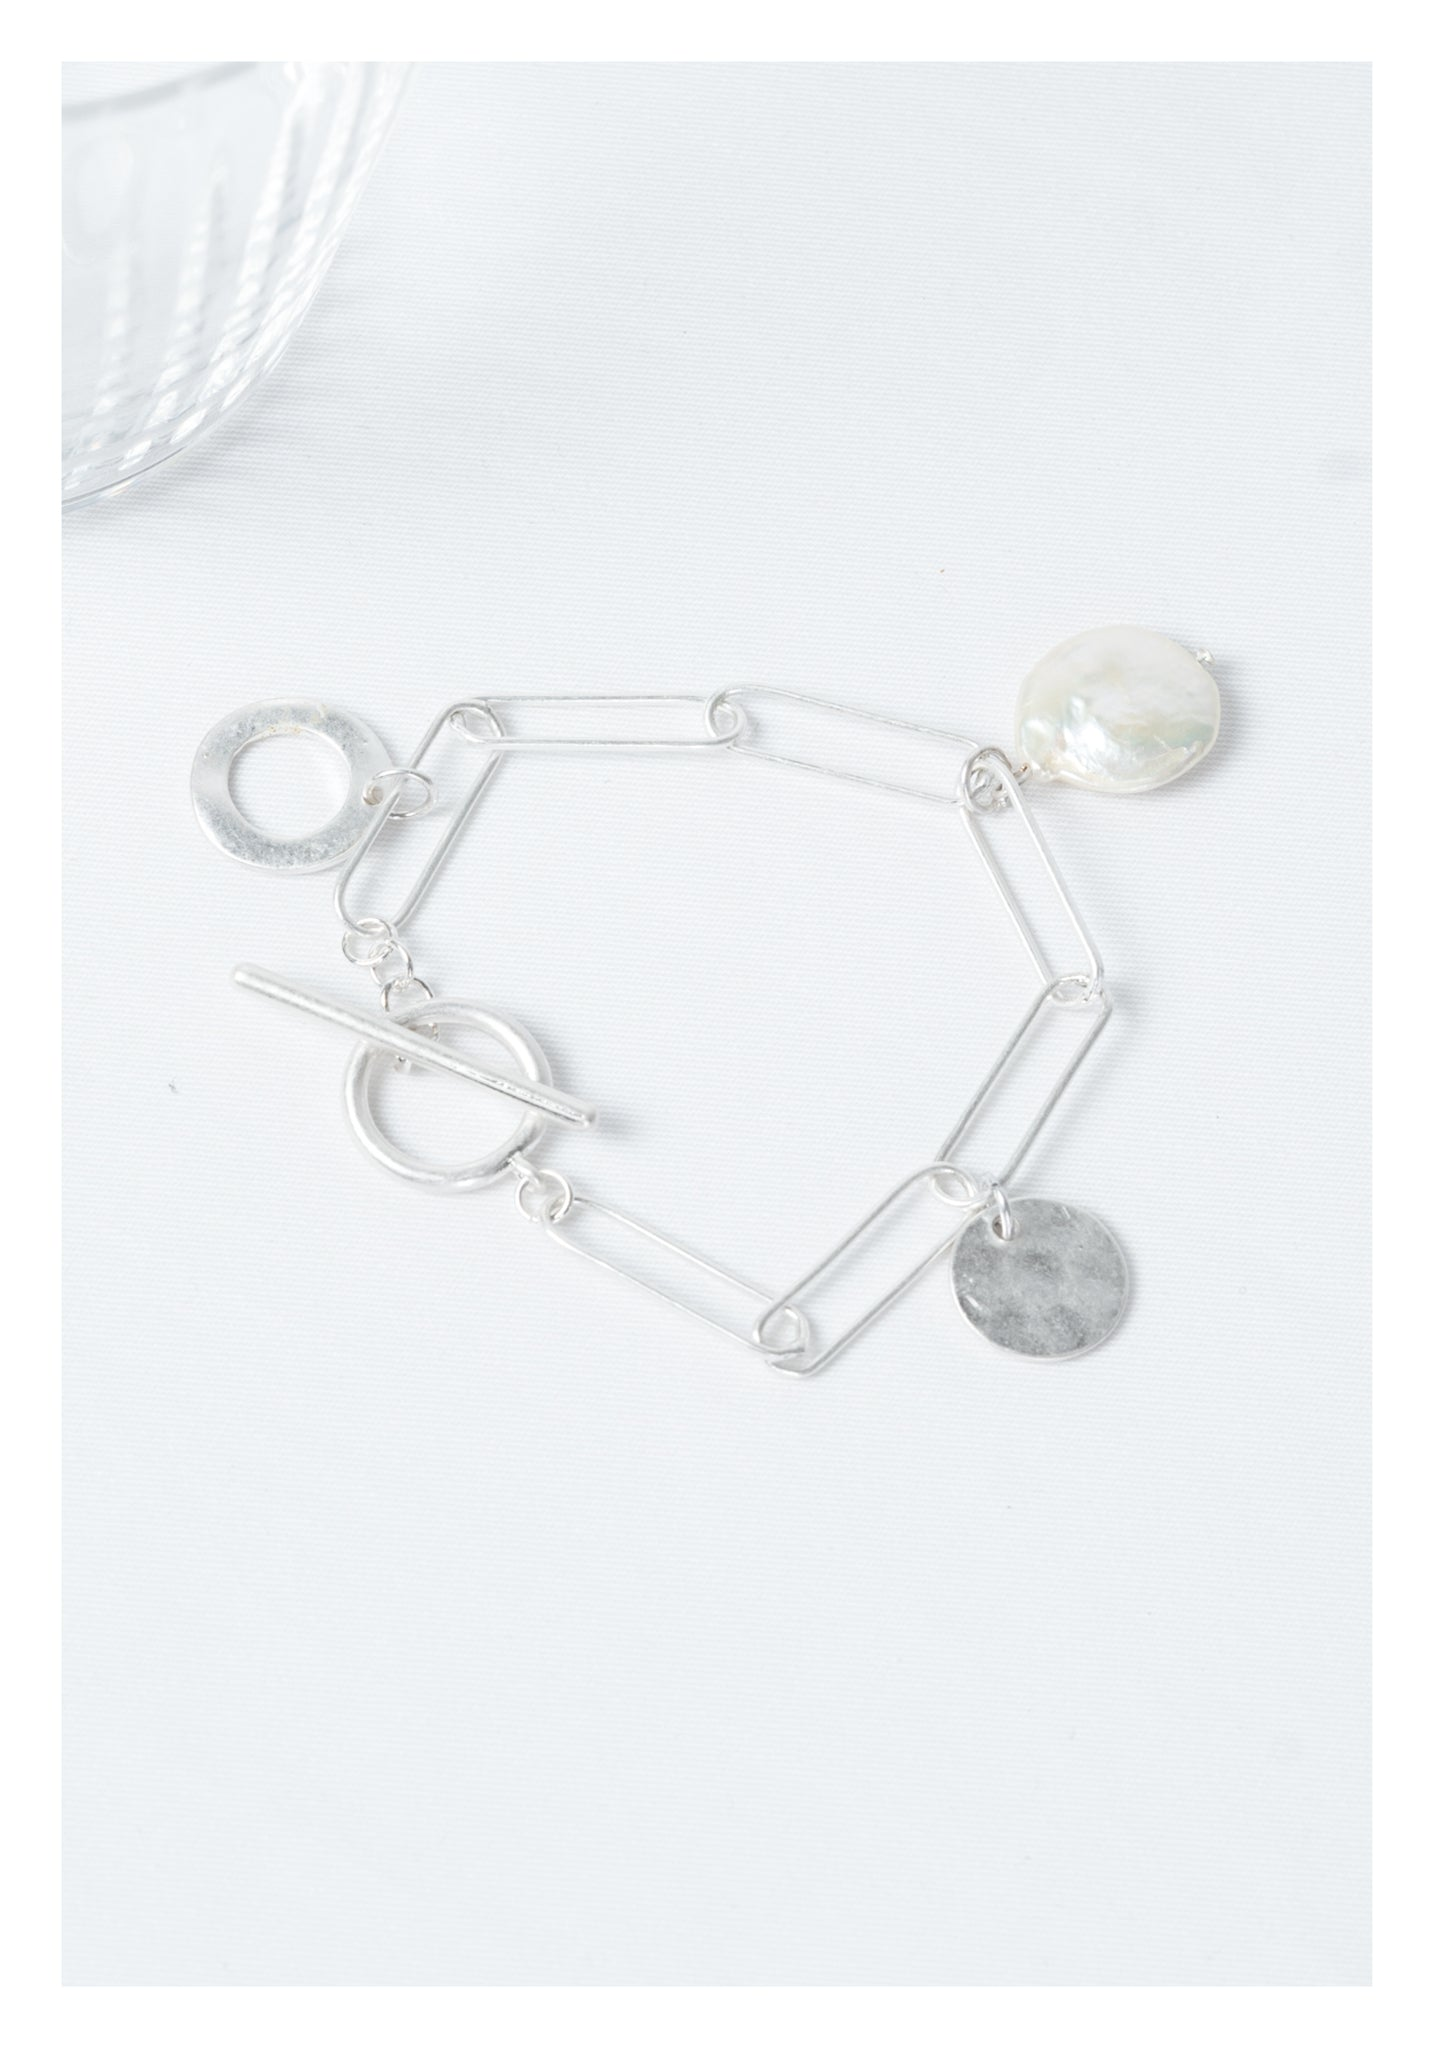 Baroque Pearl and Pendant Bracelet Silver - whoami